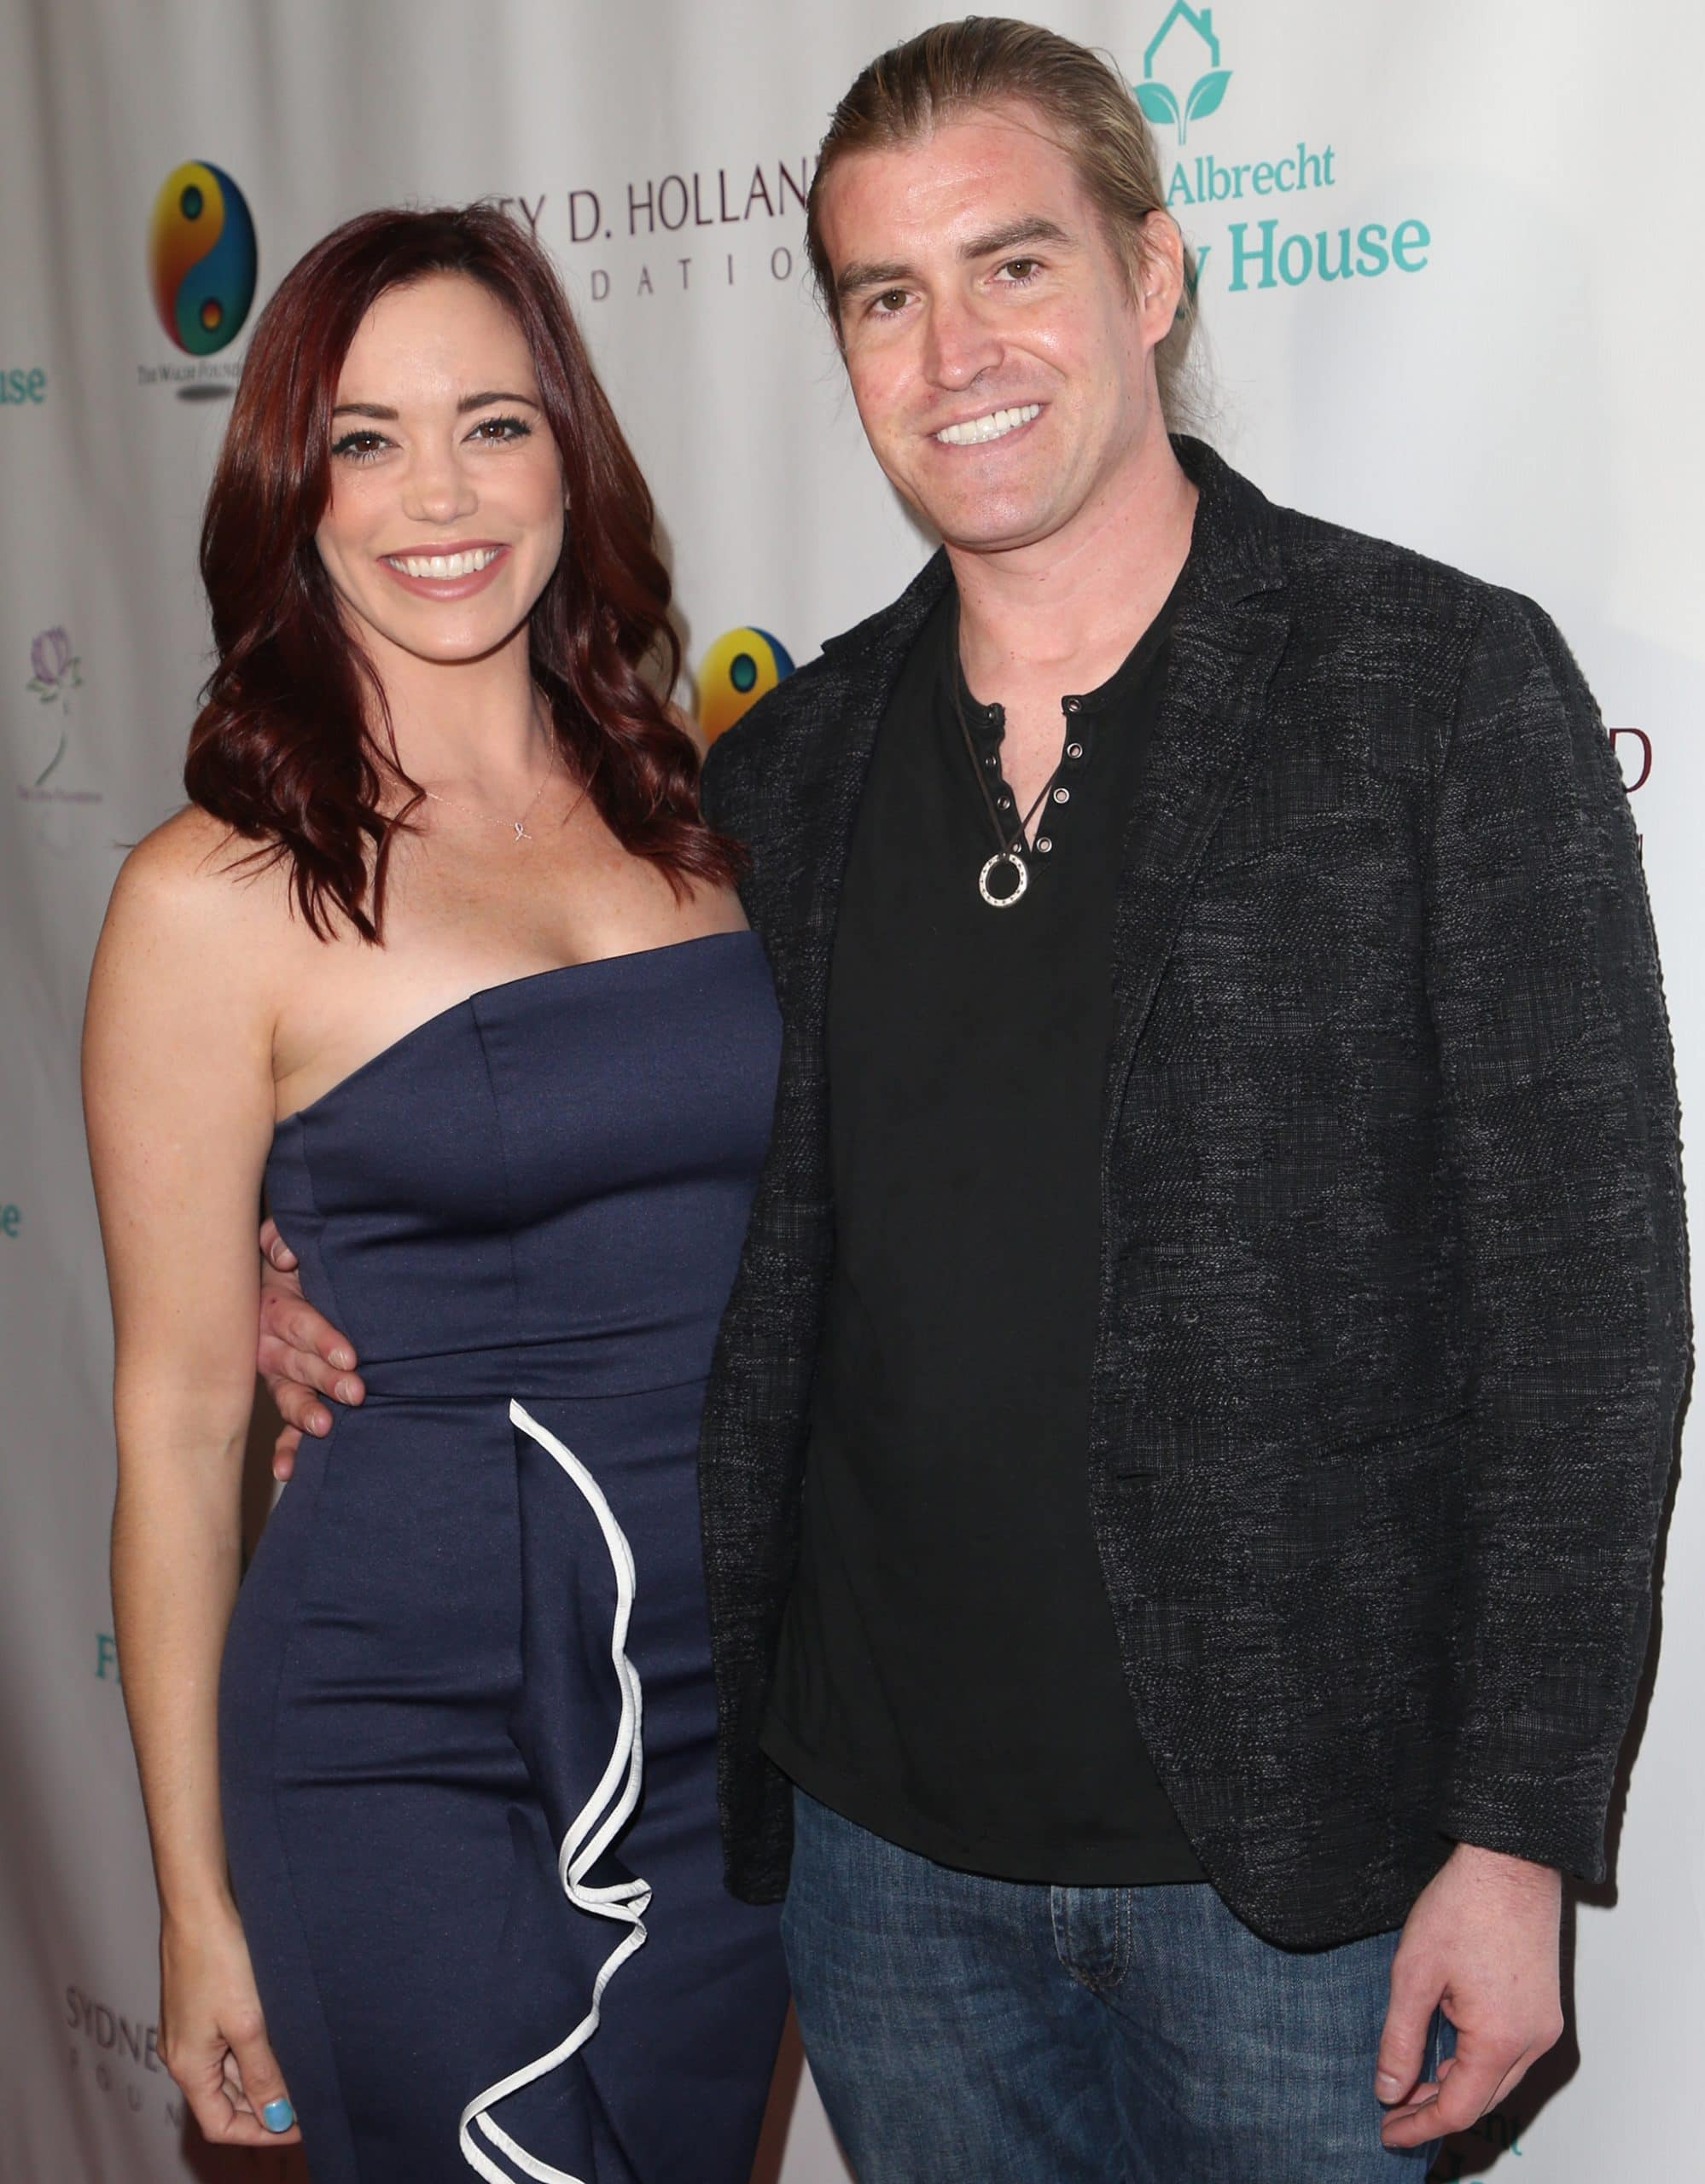 The Pussycat Dolls' Jessica Sutta met Mikey Marquart in 2016 at the Beach House sober living facility in Malibu